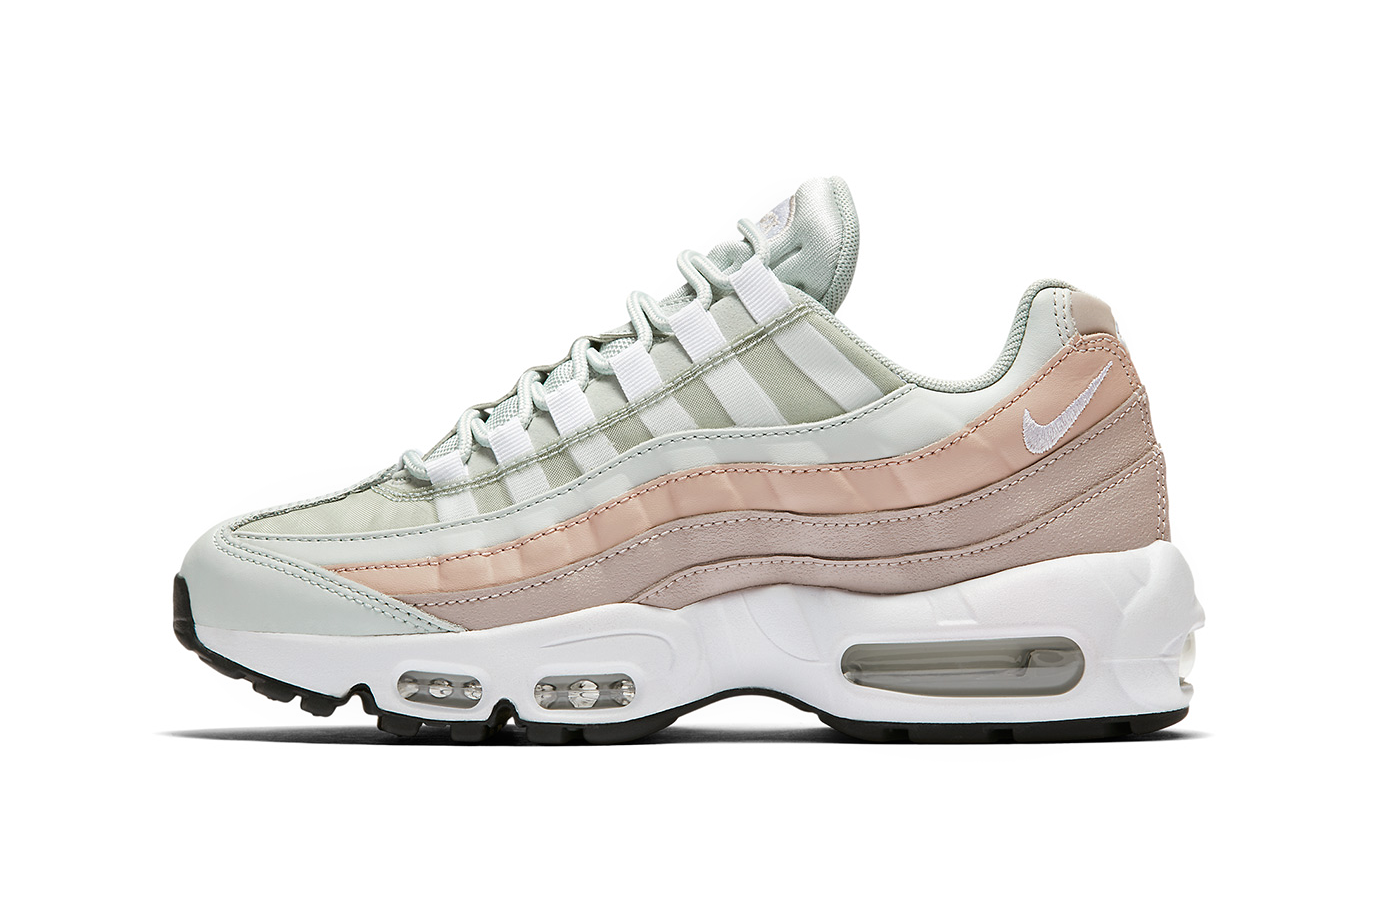 Peep the Pastel Shades on Nike's Air Max 95